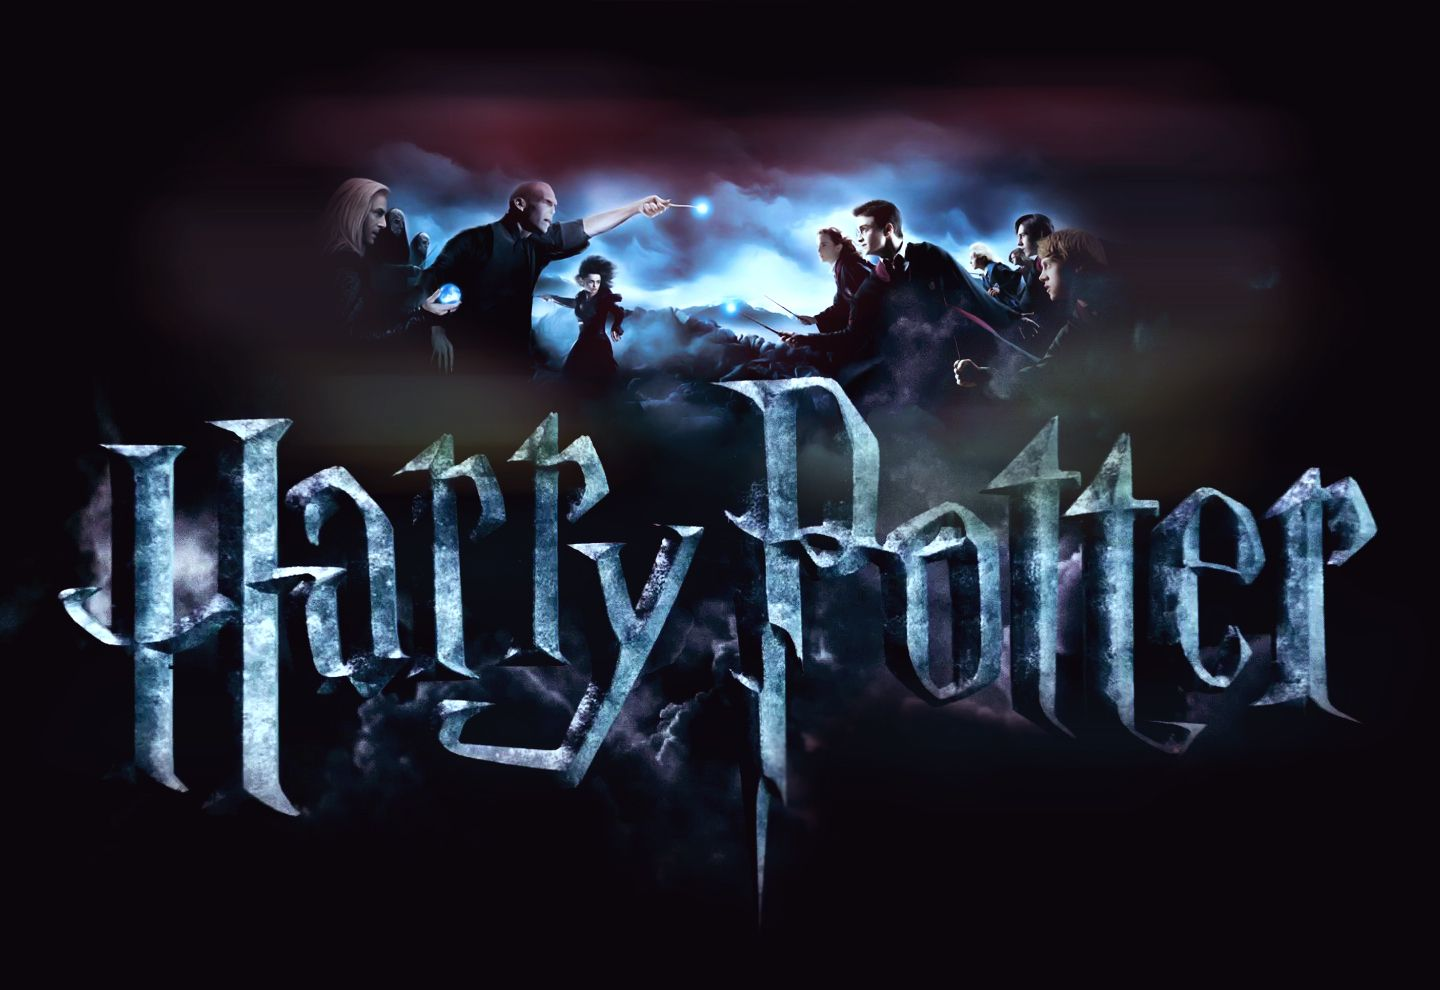 Harry Potter Wallpapers Hd Quadribol Varinha Dumbledore Harry